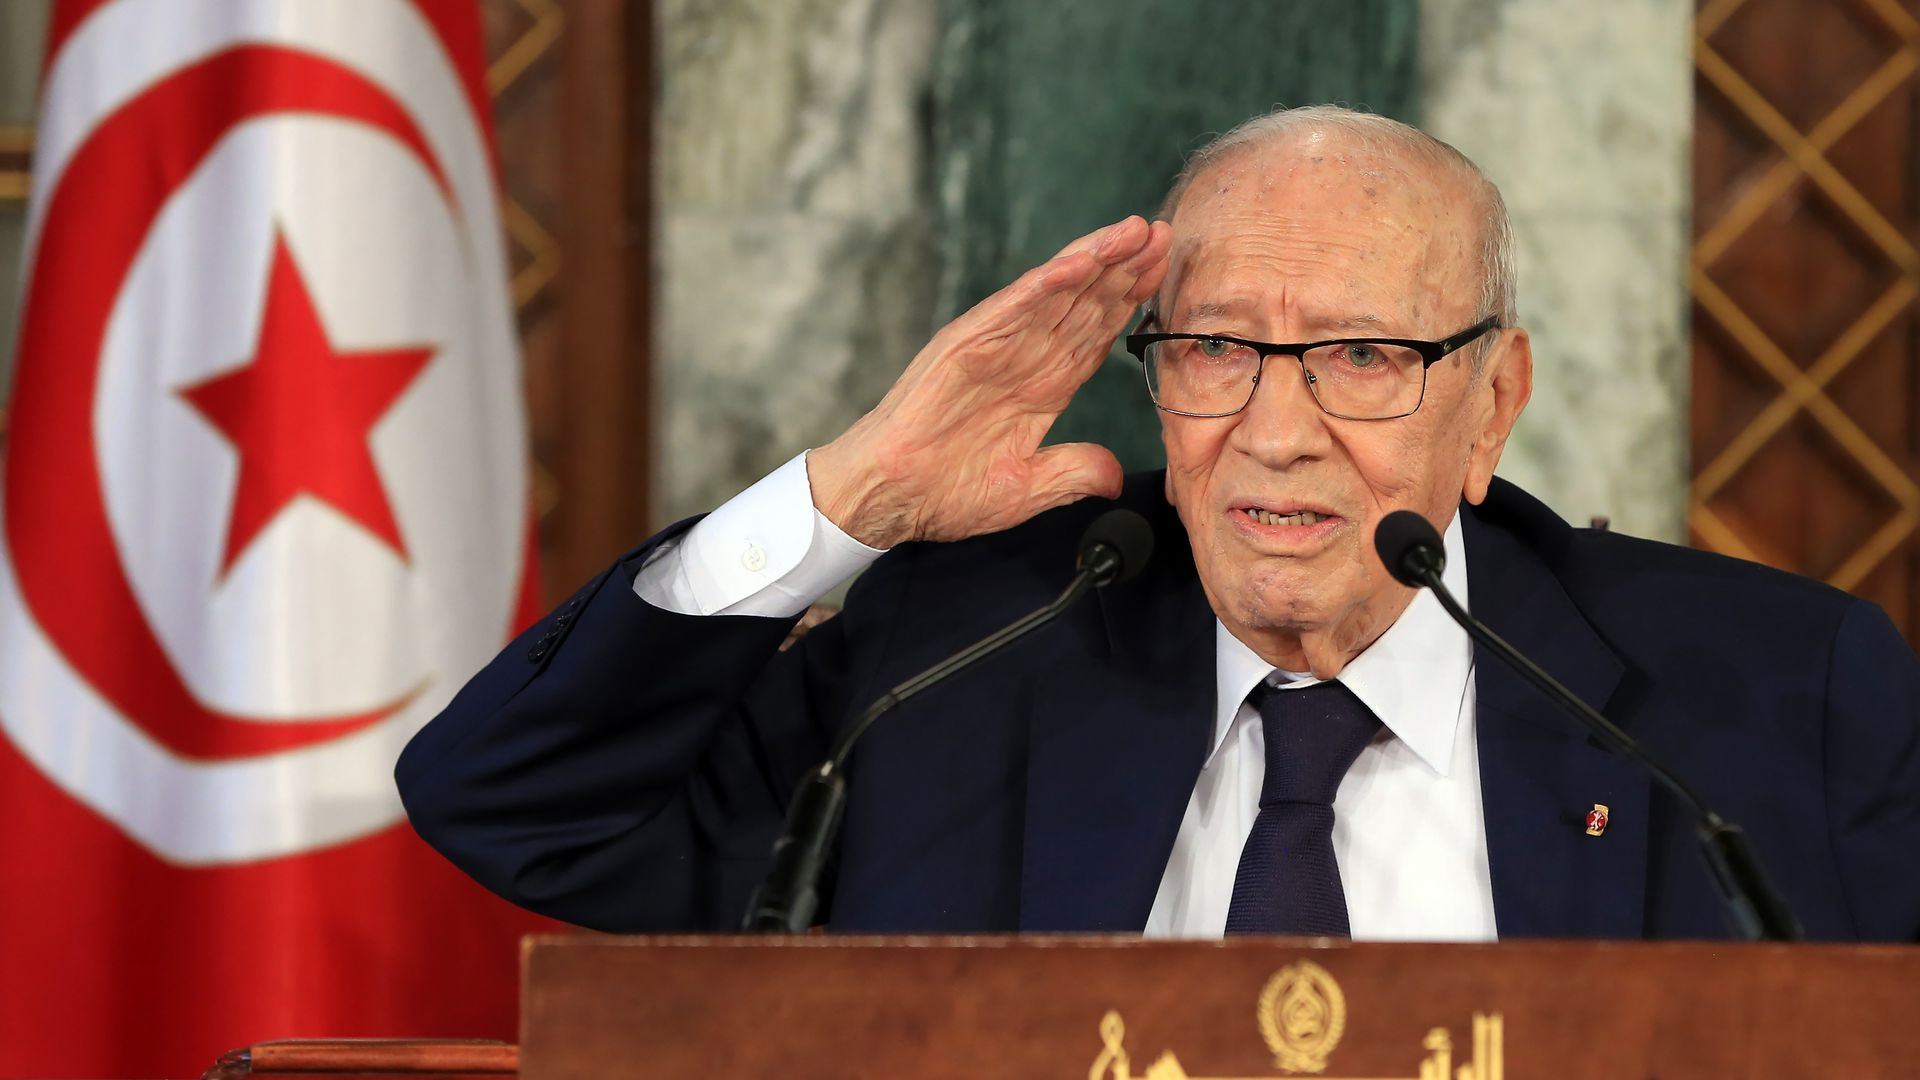 Beji Caid Essebsi standing at a lectern